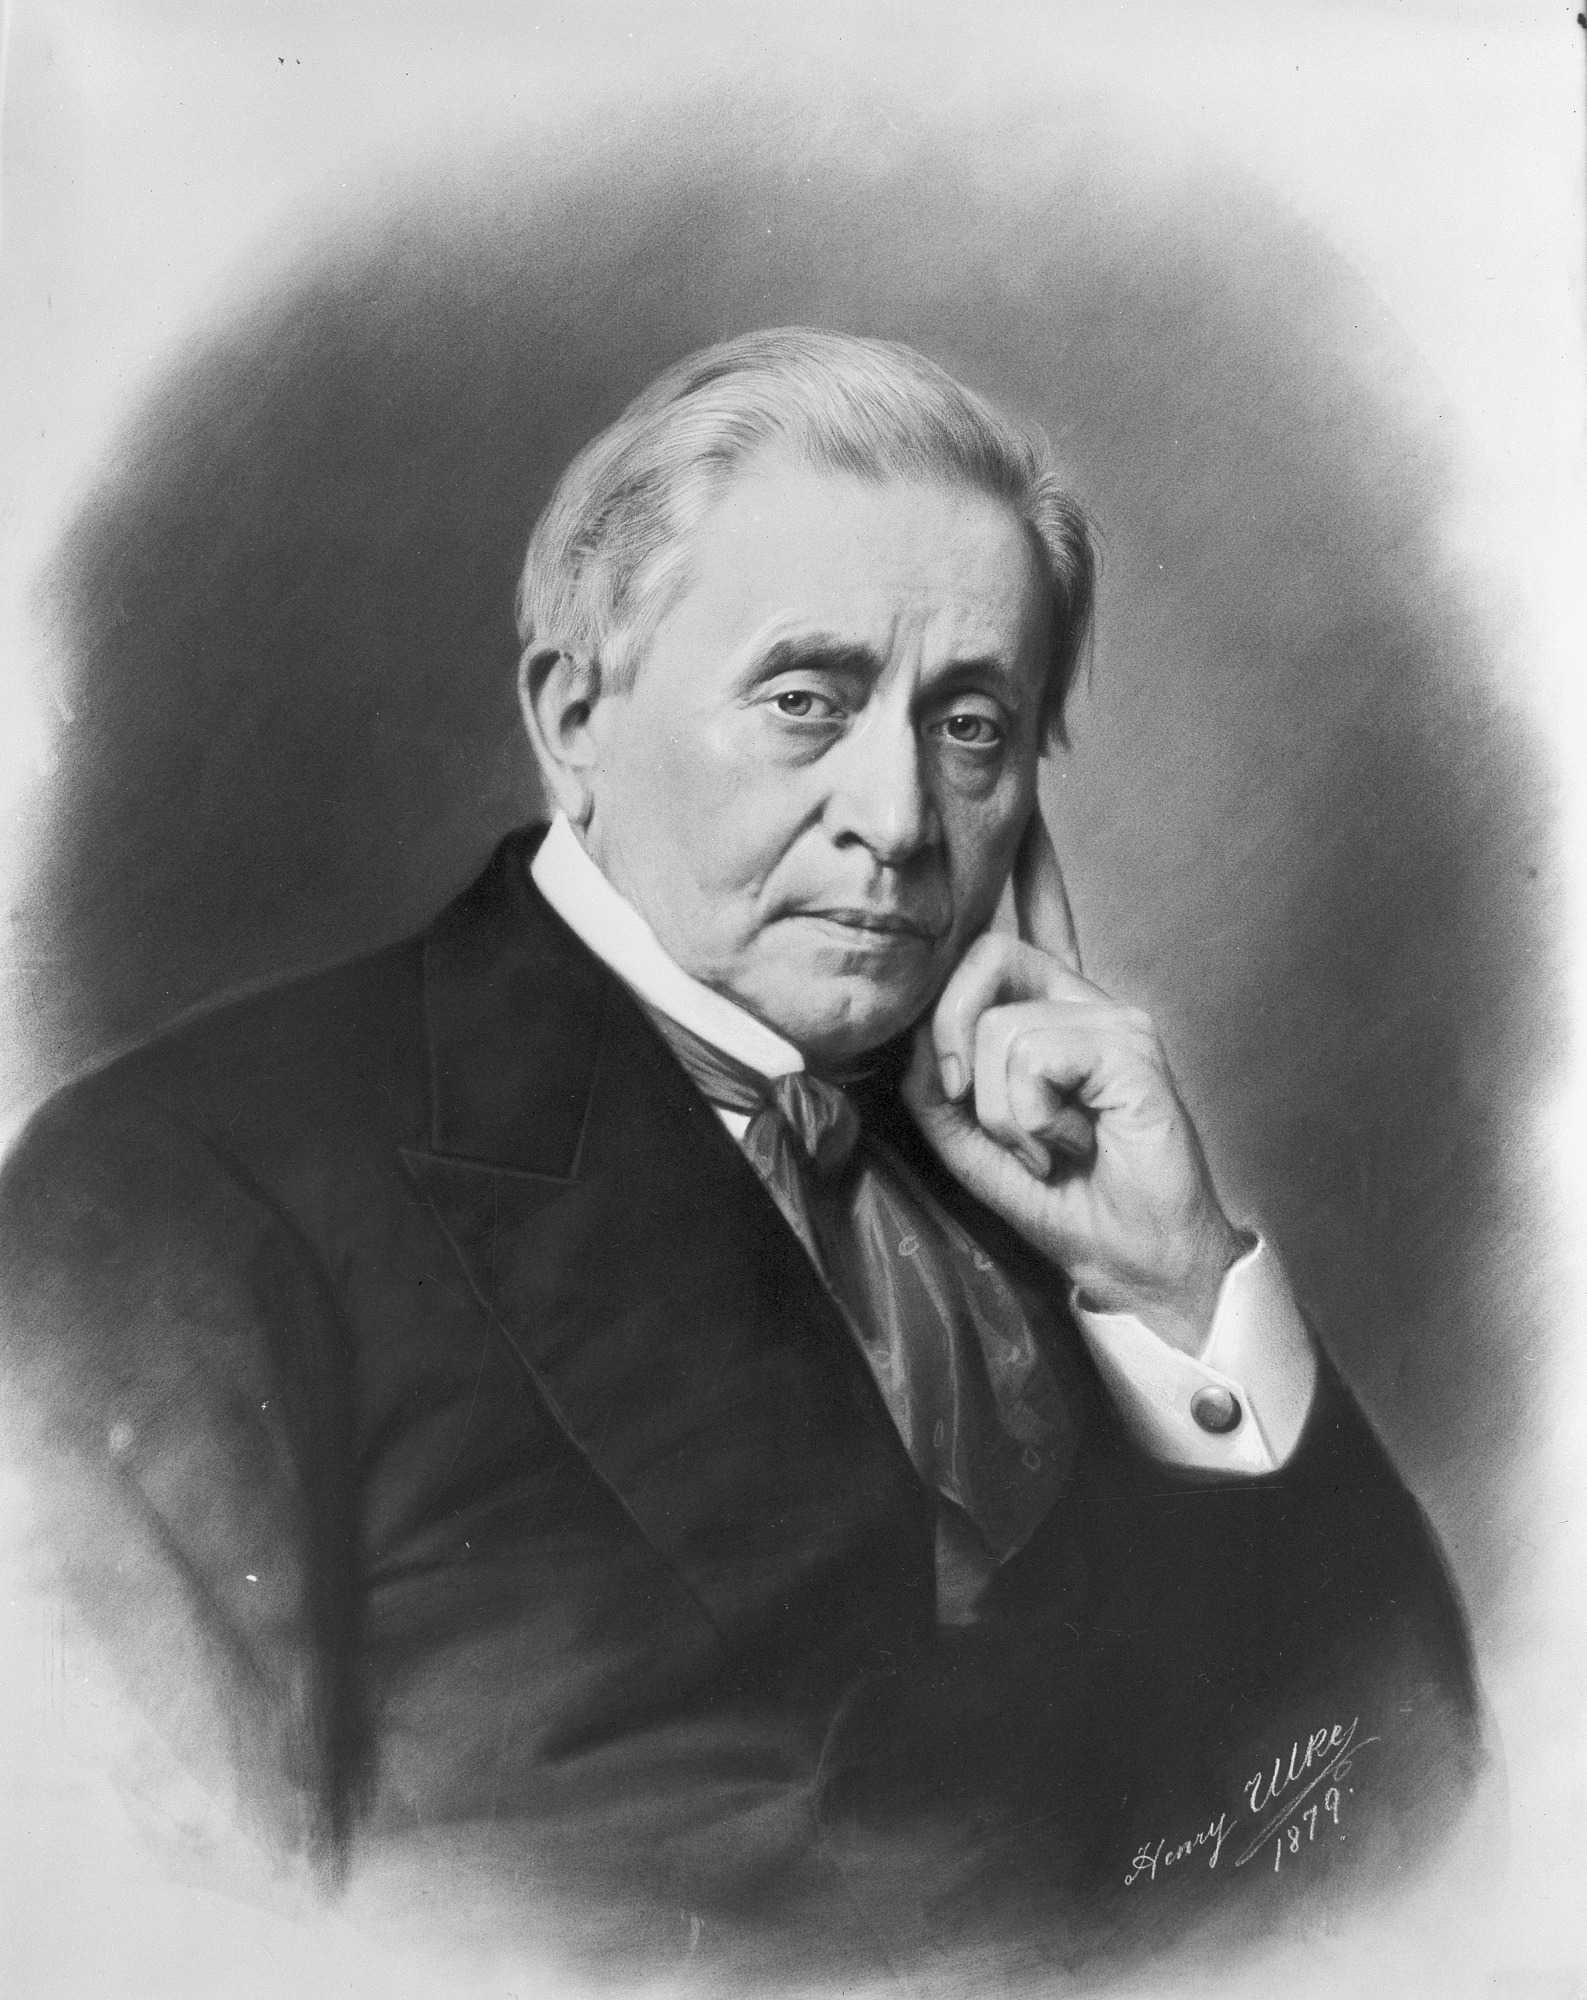 Joseph Henry Portrait, by Ulke, Henry, 1879, Smithsonian Archives - History Div, 10191or AI-10191.